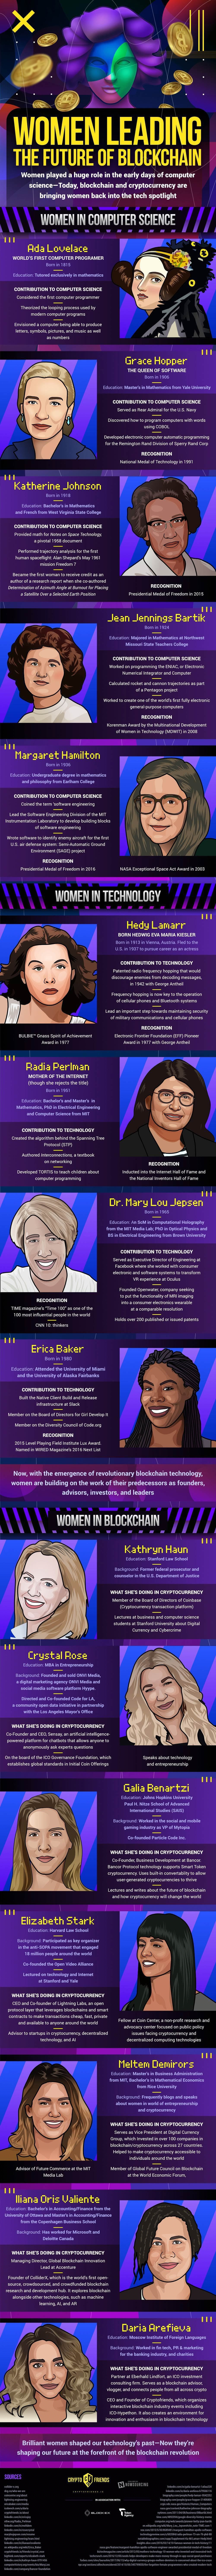 Women Leading The Future Of Blockchain #Infographic